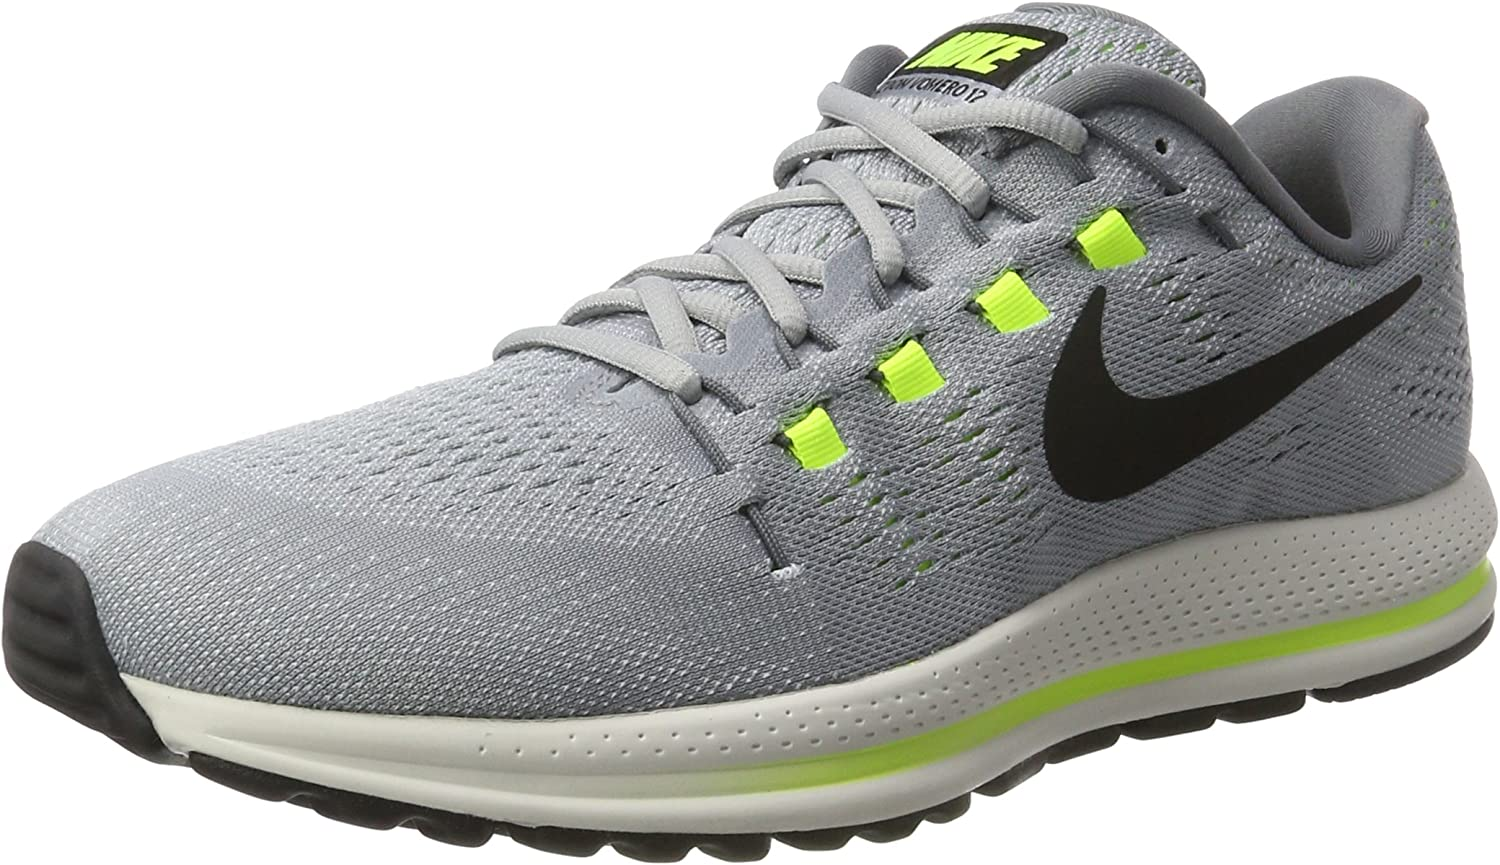 Nike Air Zoom Vomero 12 Mens Running Trainers